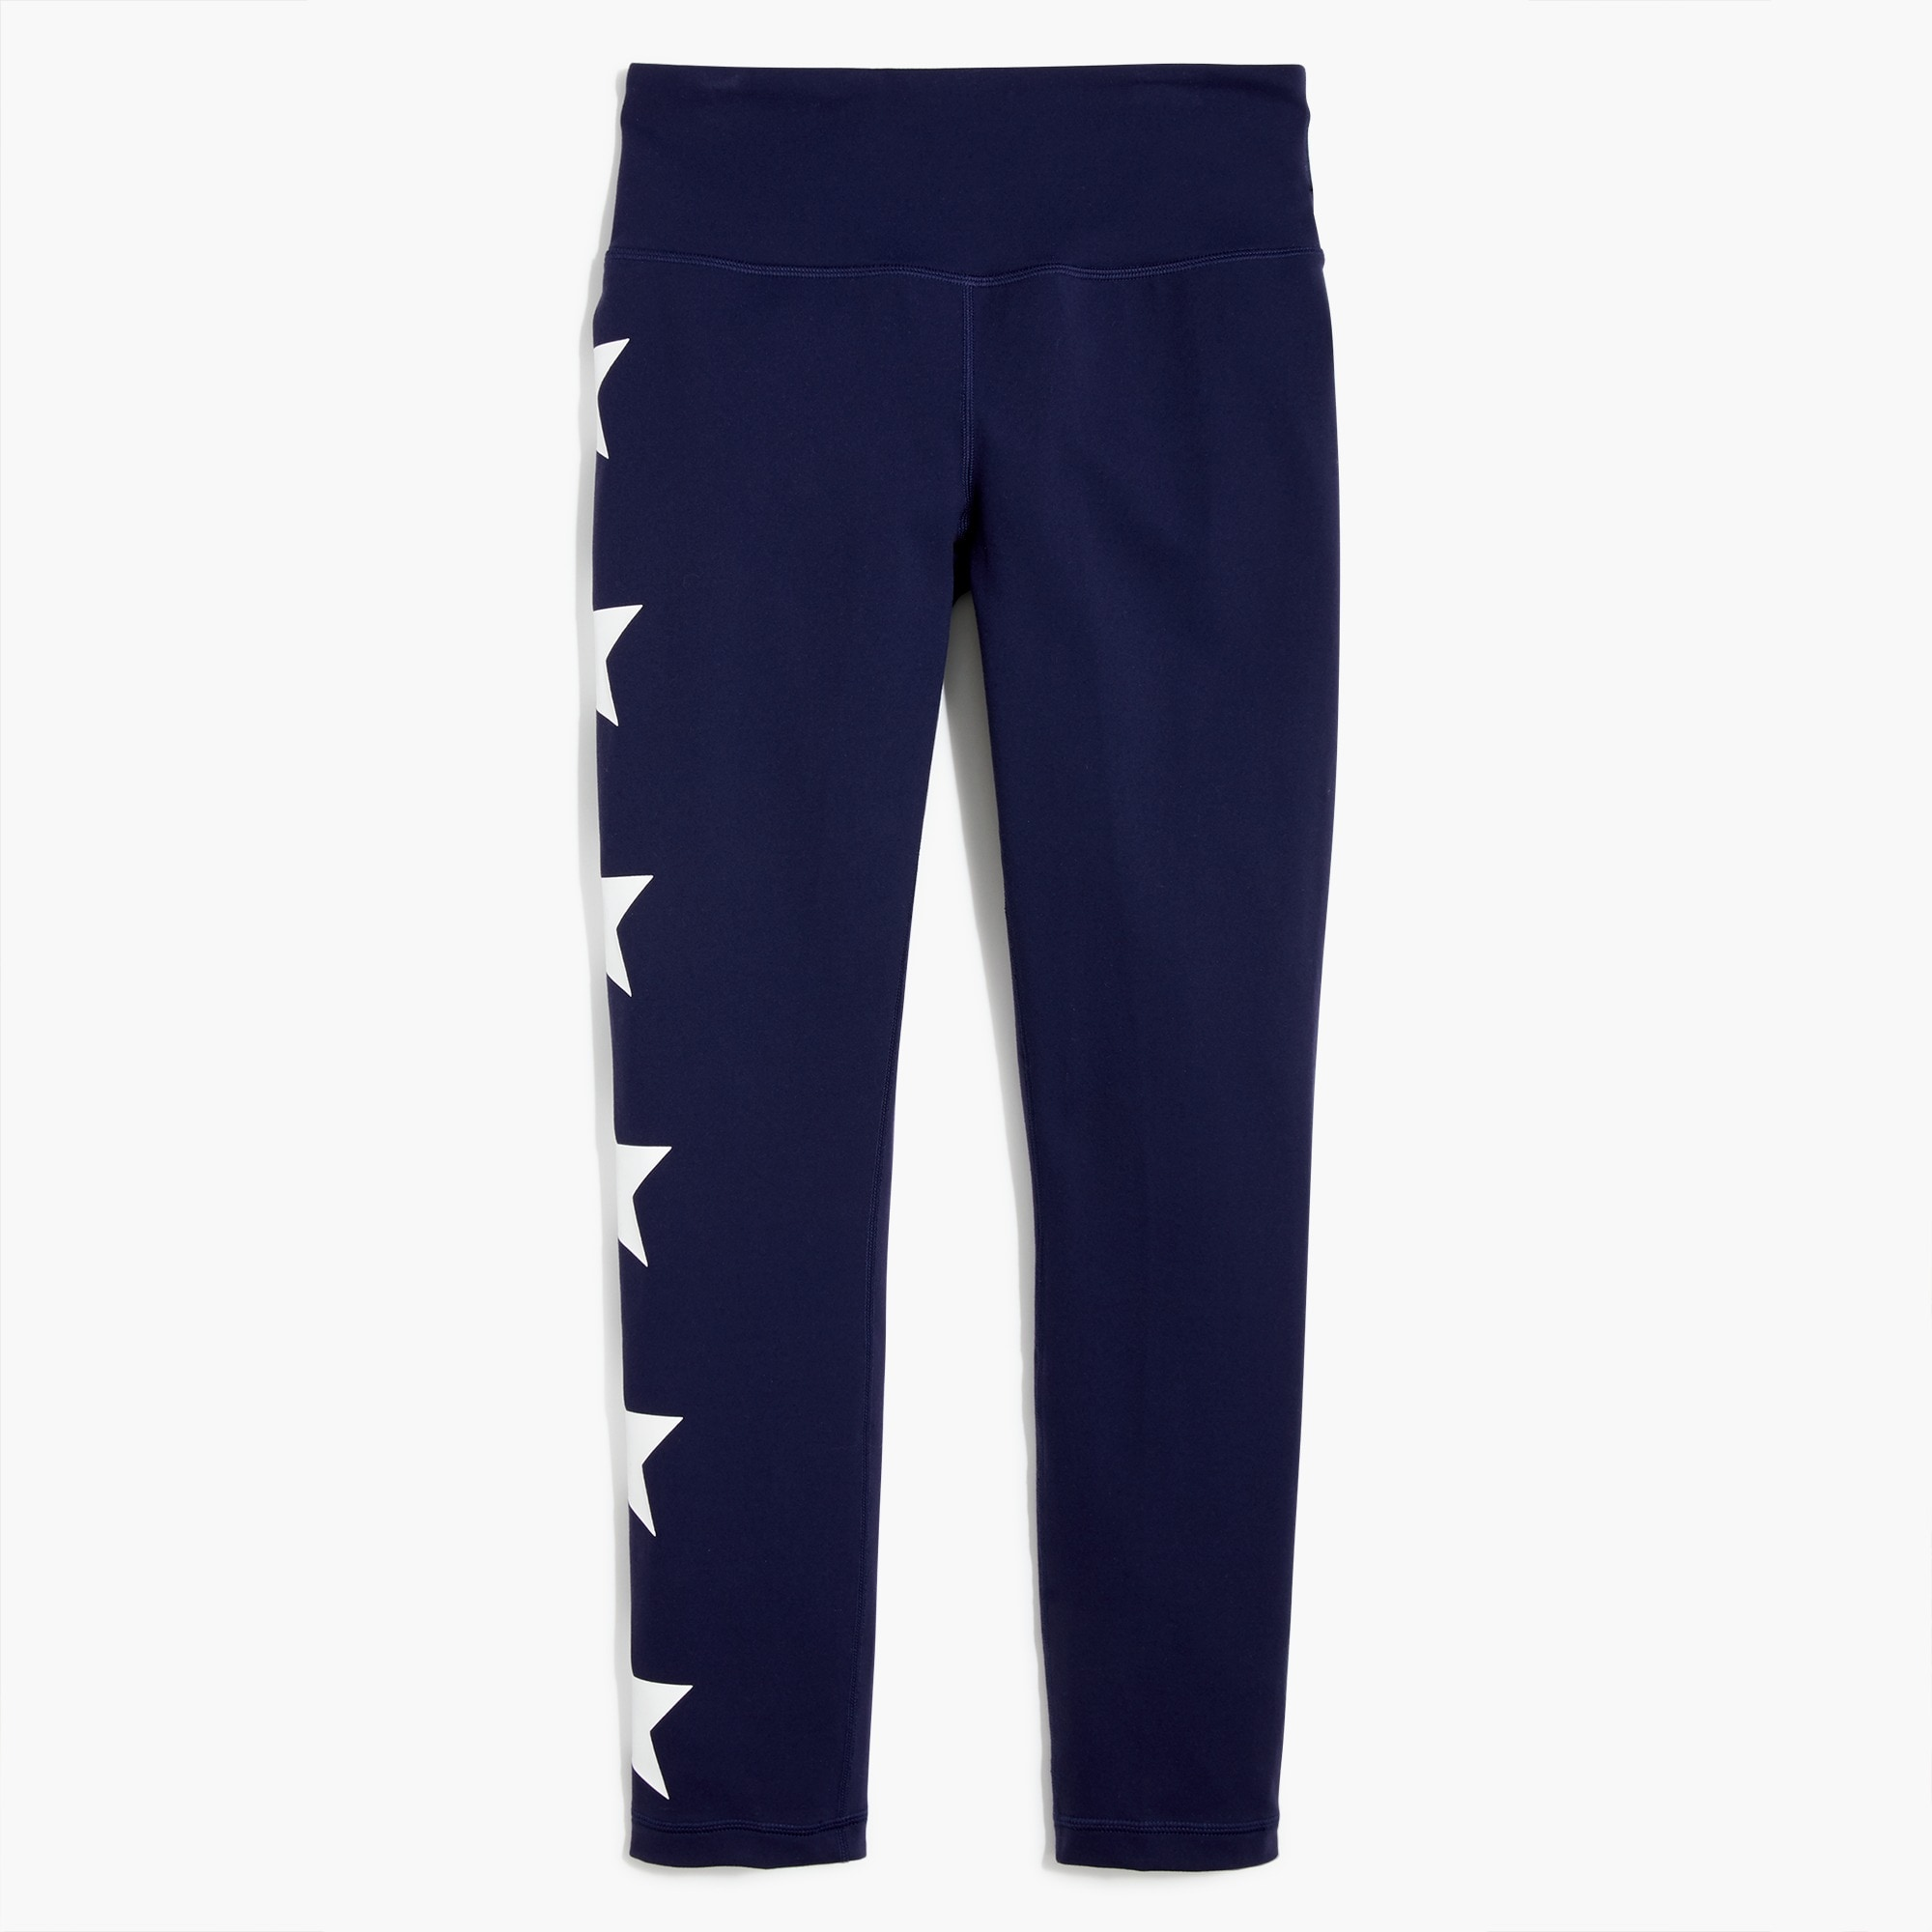 New Balance® for J.Crew performance seamless cropped leggings in stars